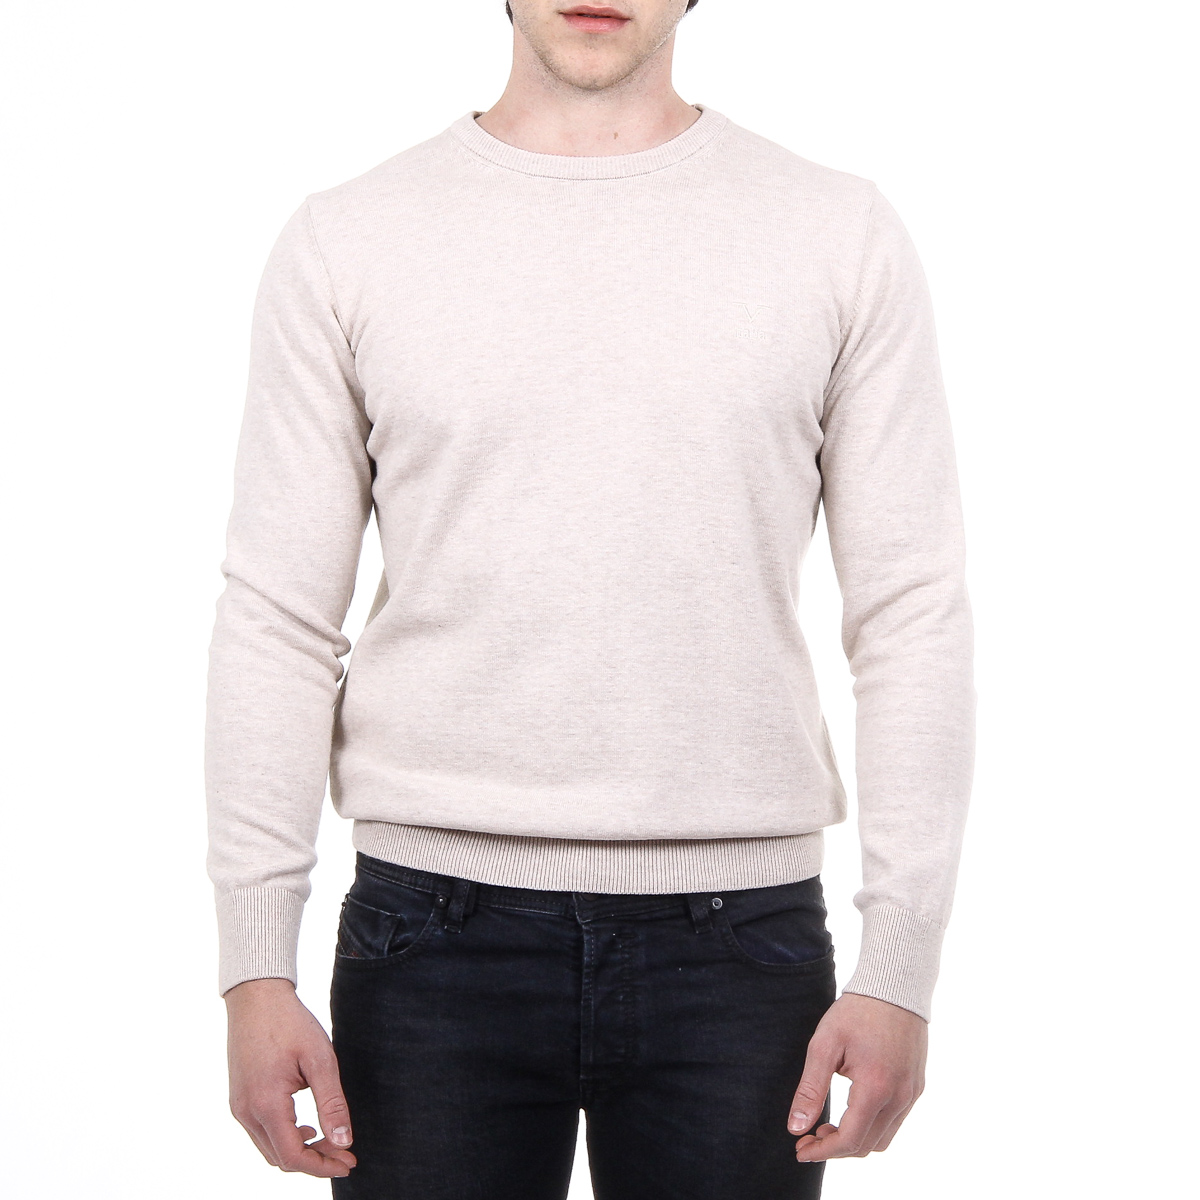 Primary image for V 1969 Italia Mens Sweater Long Sleeves Round Neck